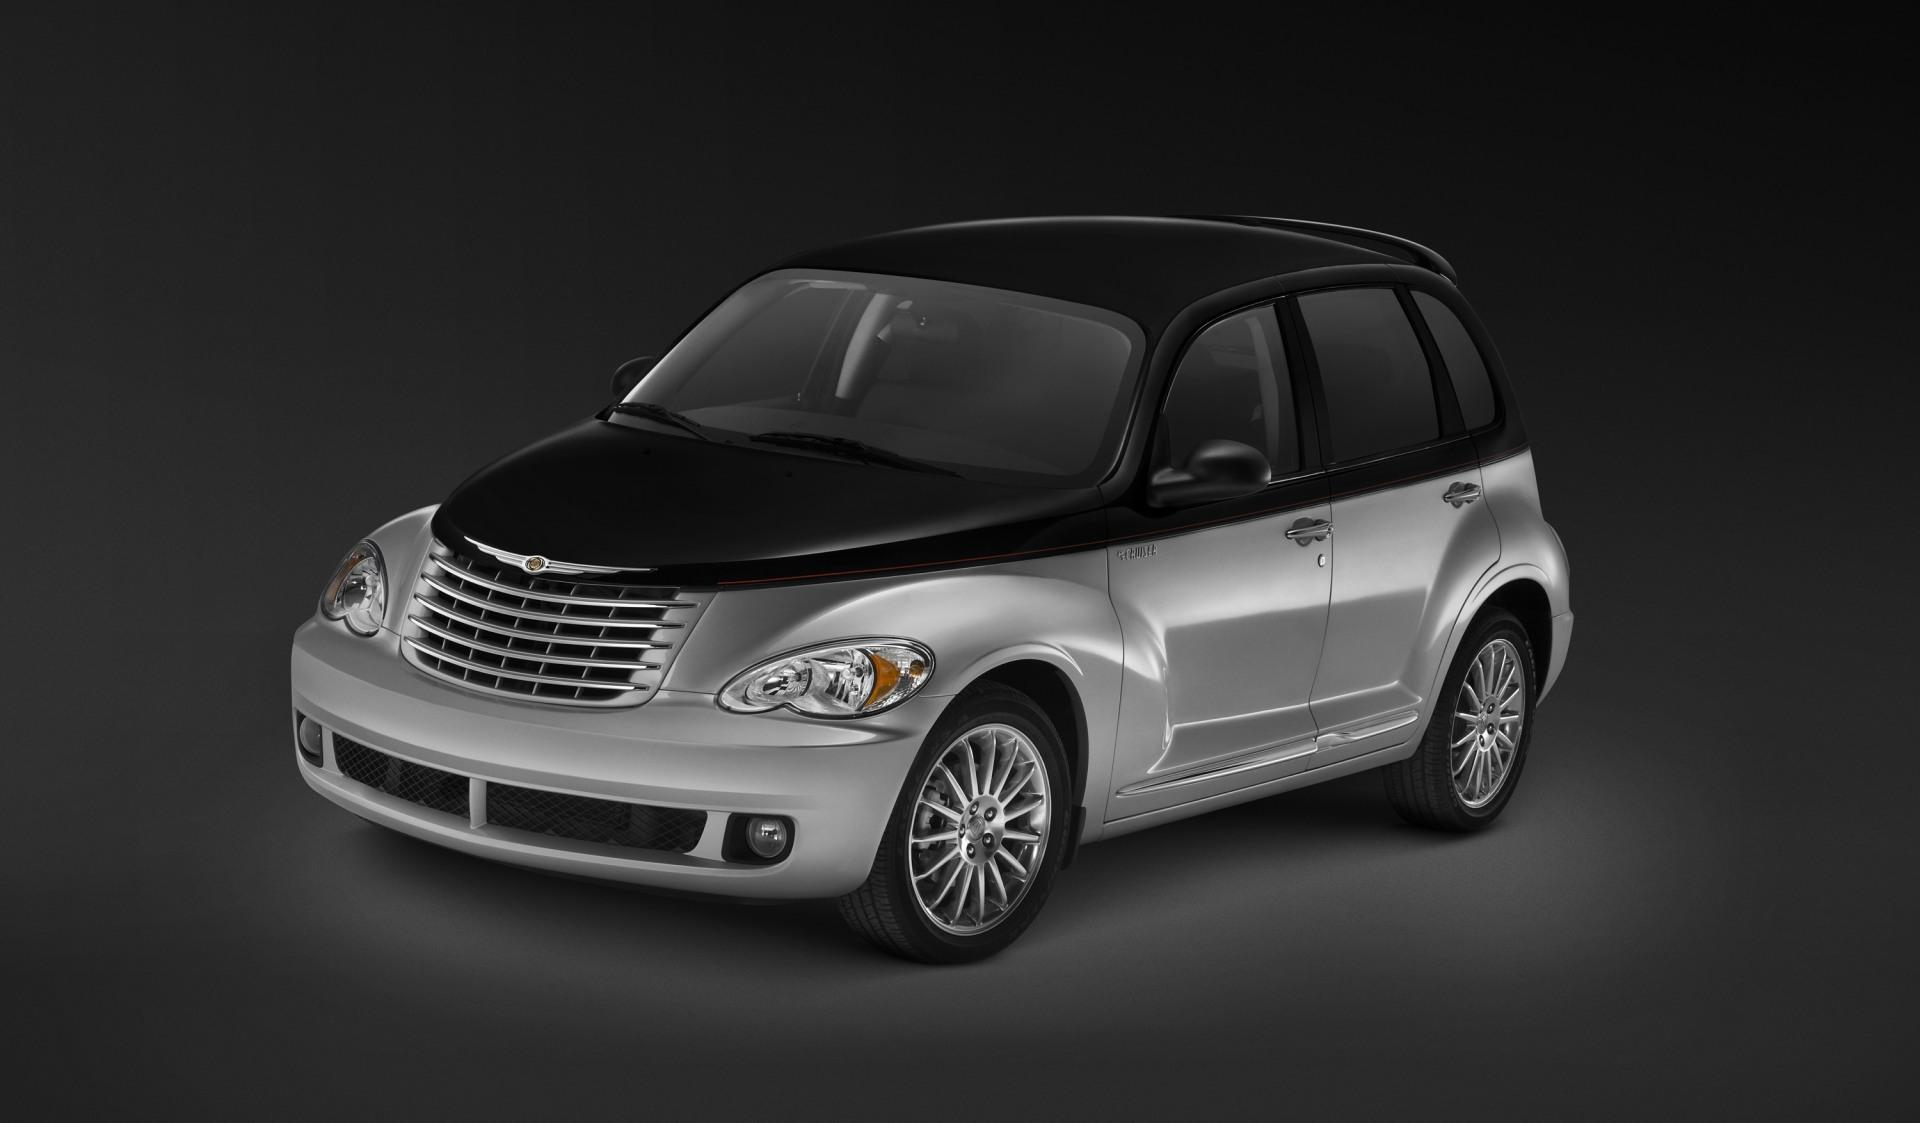 Antique Car Wallpaper 2010 Chrysler Pt Cruiser Couture Edition News And Information